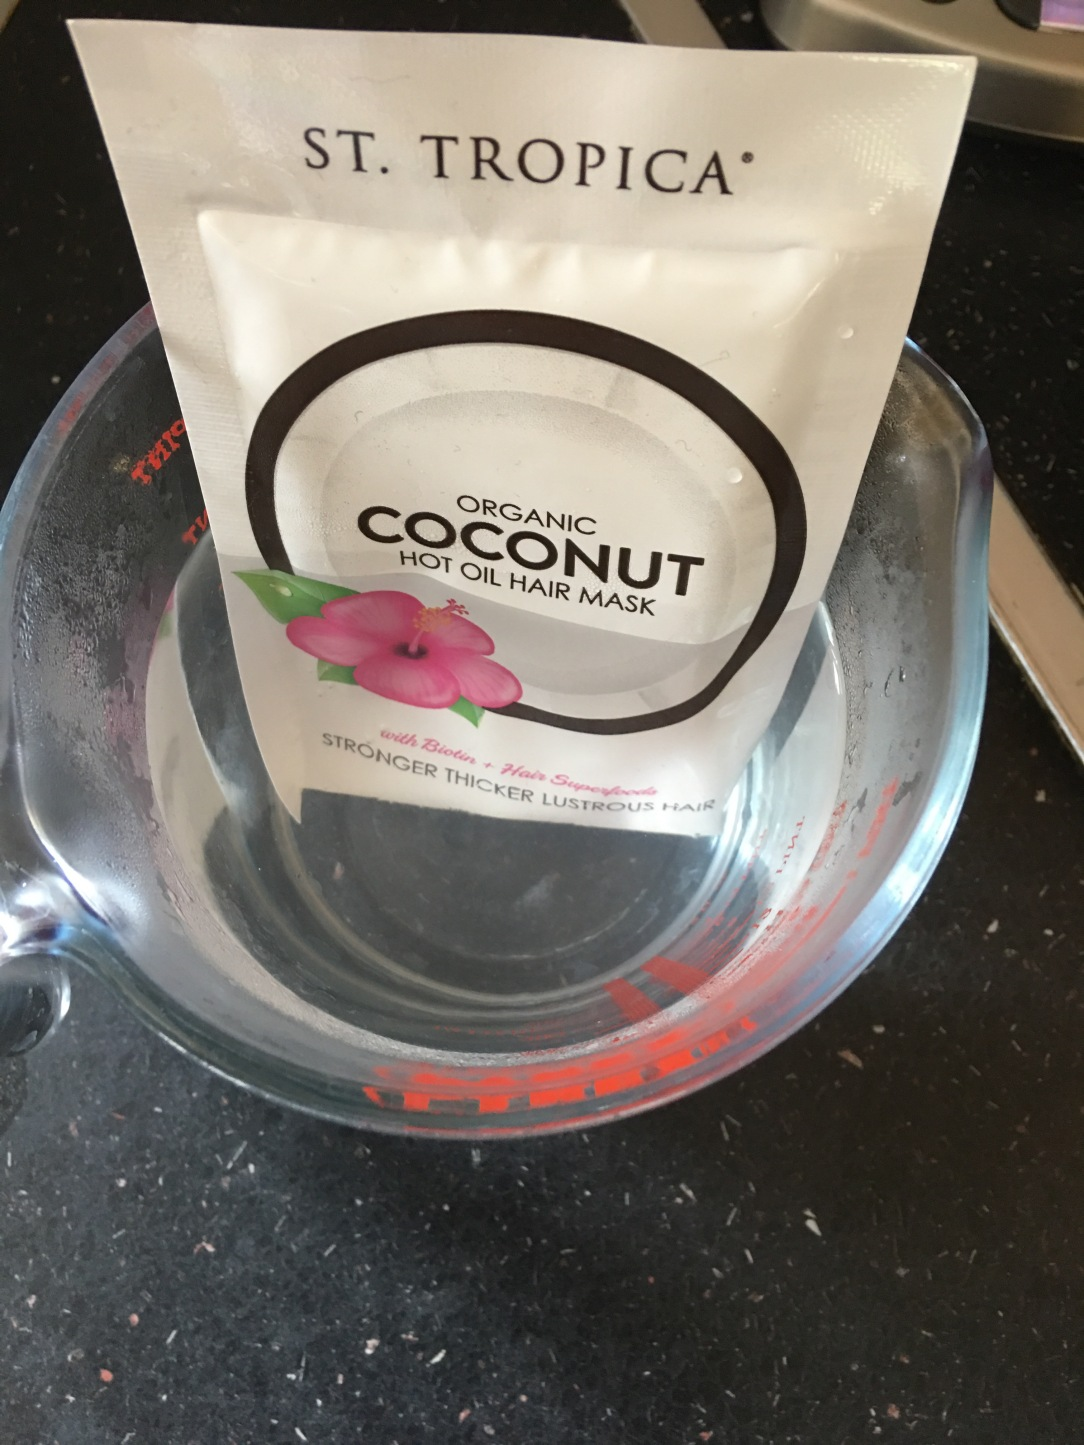 St Tropica organic coconut hot oil hair mask